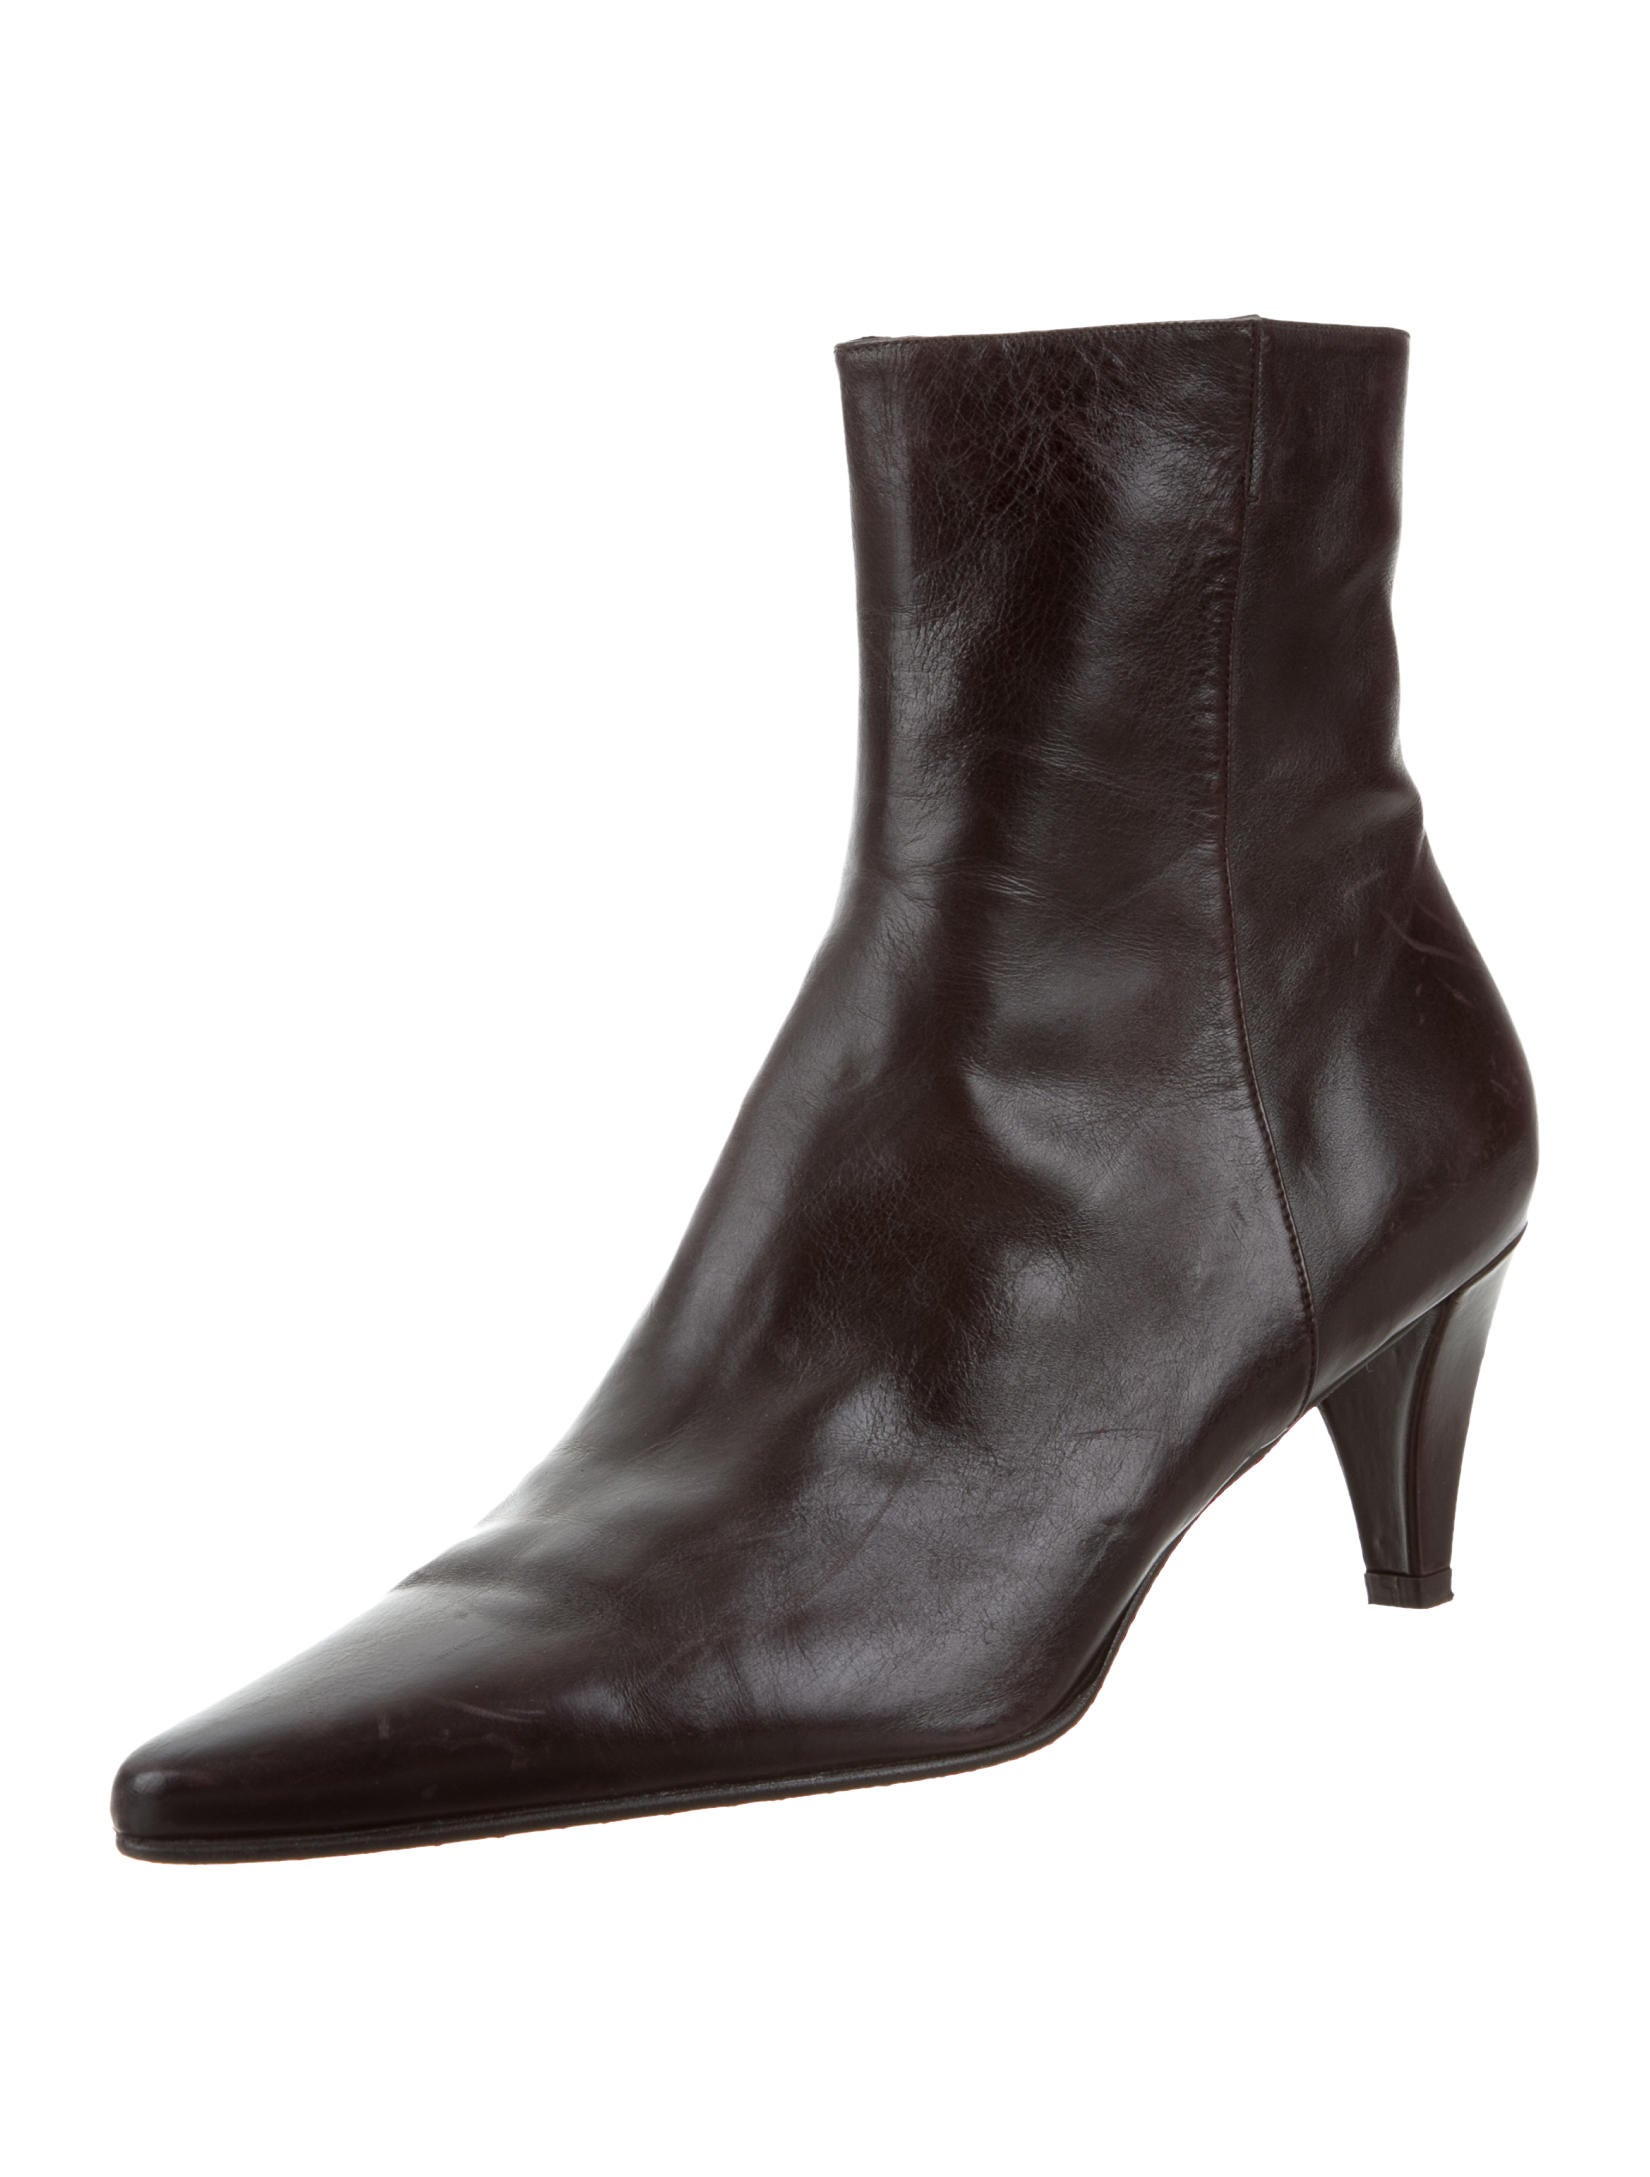 stuart weitzman leather pointed toe ankle boots shoes